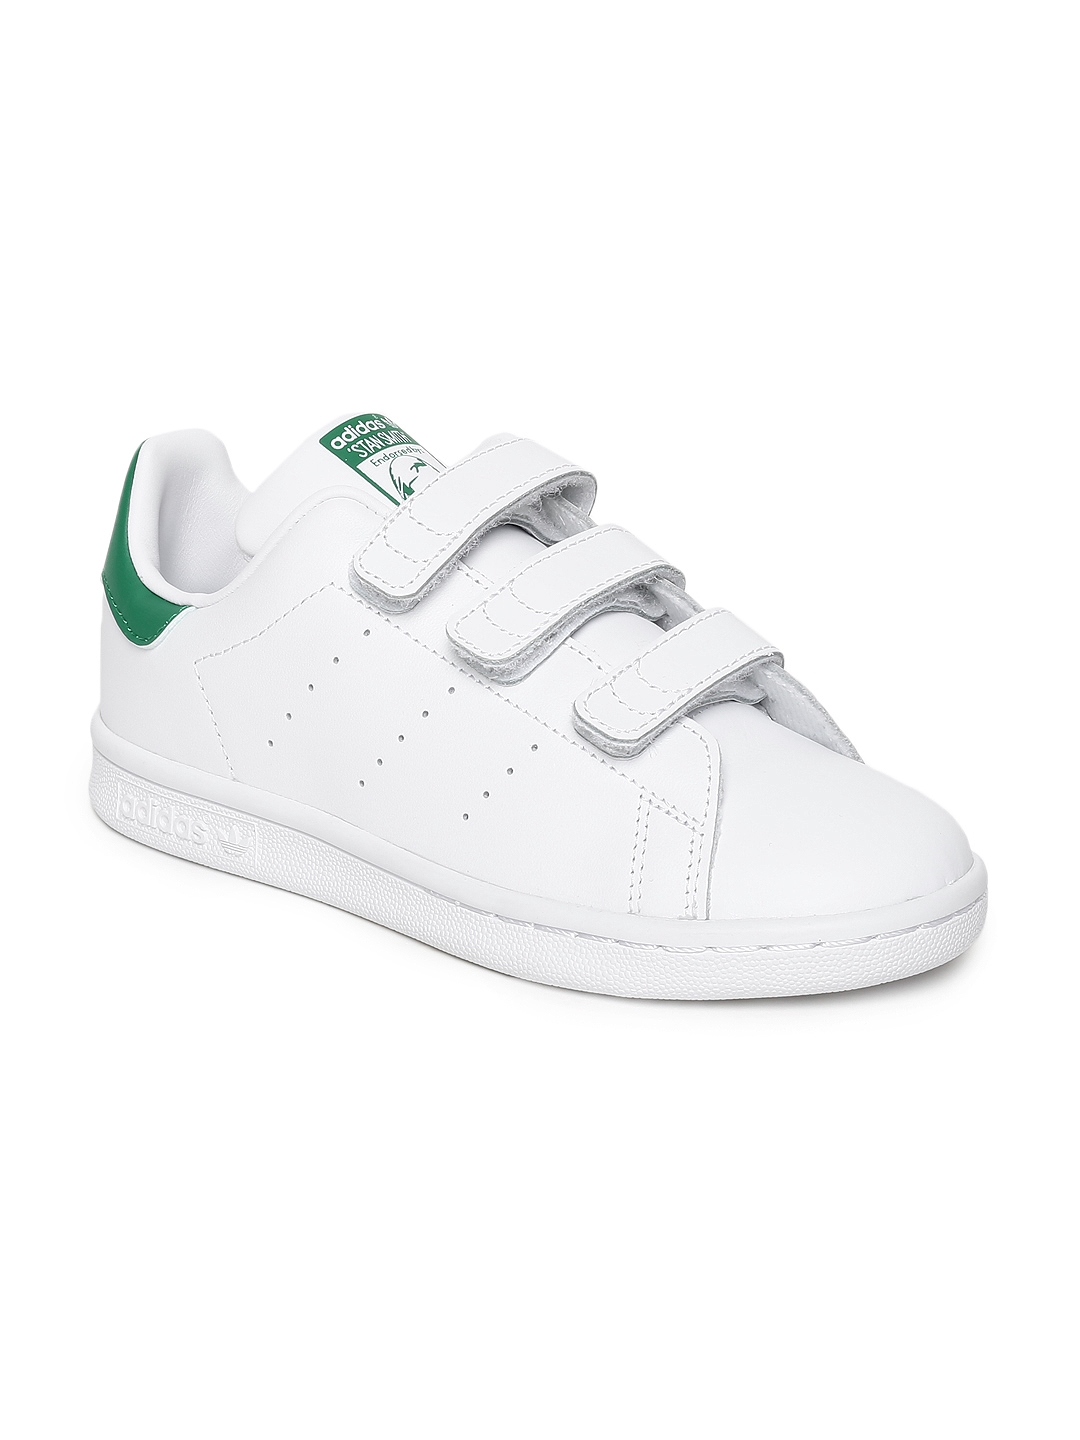 86d74bd74e82f Buy ADIDAS Originals Kids White STAN SMITH CF C Sneakers - Casual ...